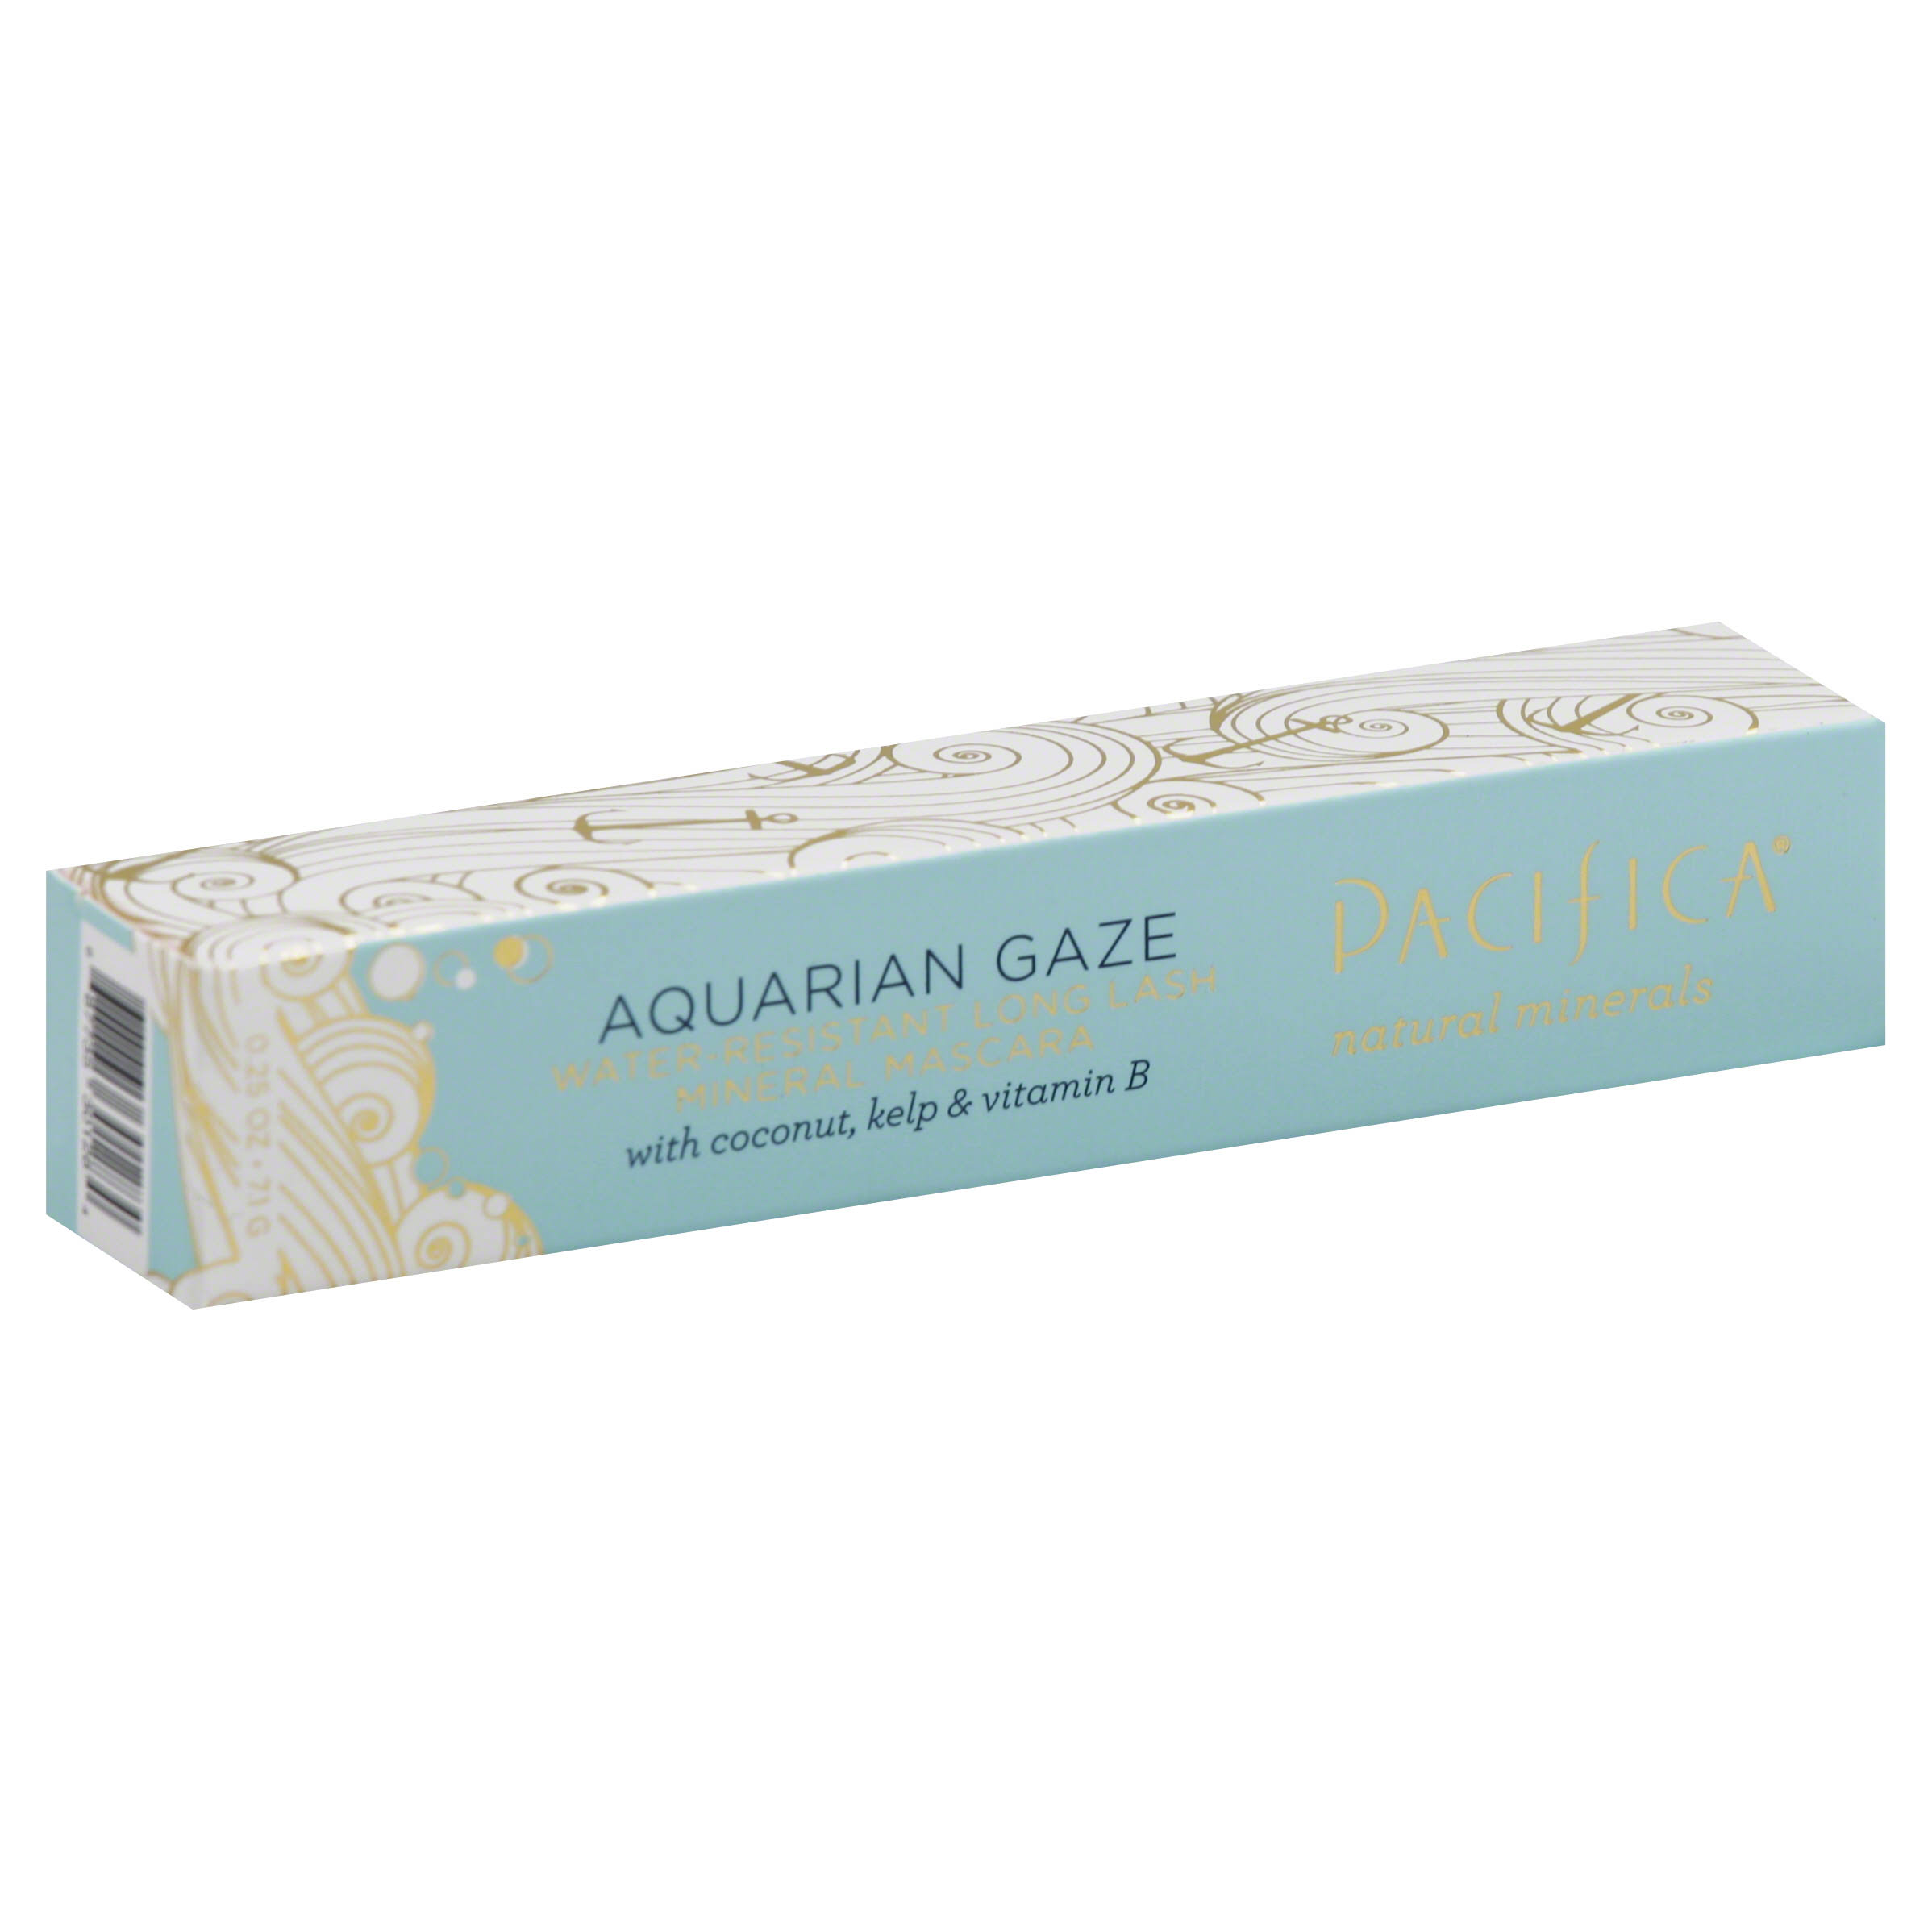 Pacifica Beauty Aquarian Gaze Water Resistant Long Lasting Mineral Mascara - Abyss, 0.25oz